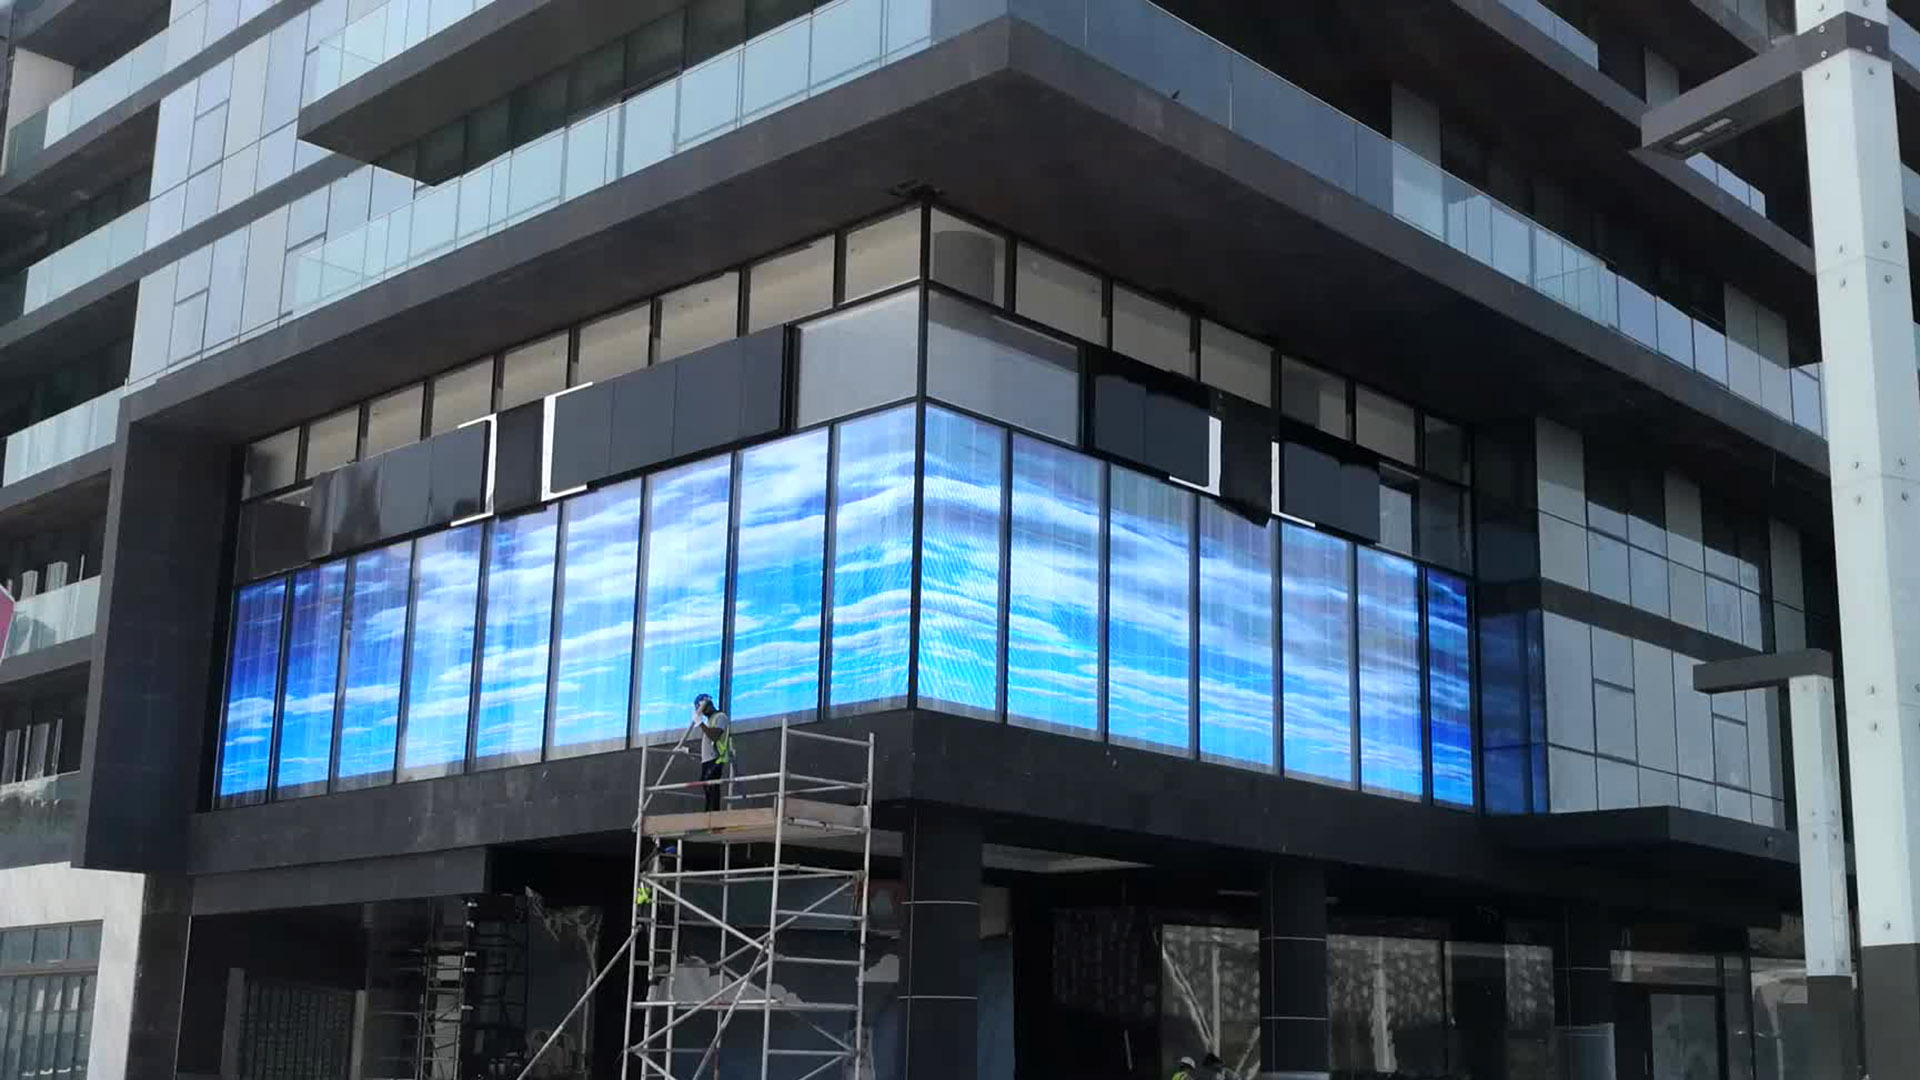 LED Curtain Video Wall - perfect for windows or other areas requiring transparency.